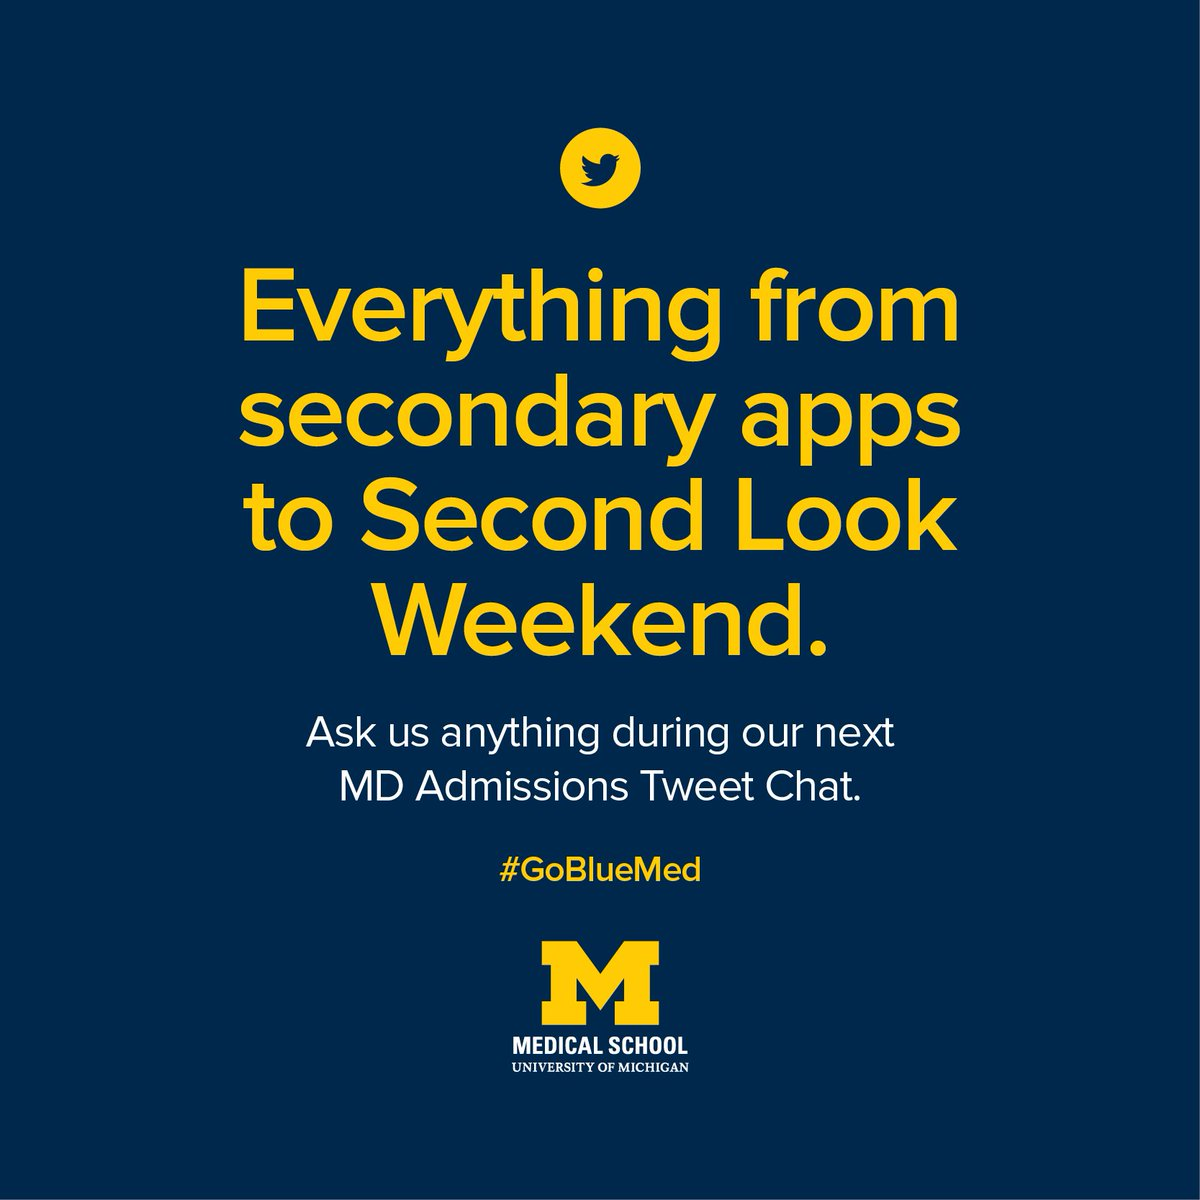 UMich Med Admissions on Twitter: